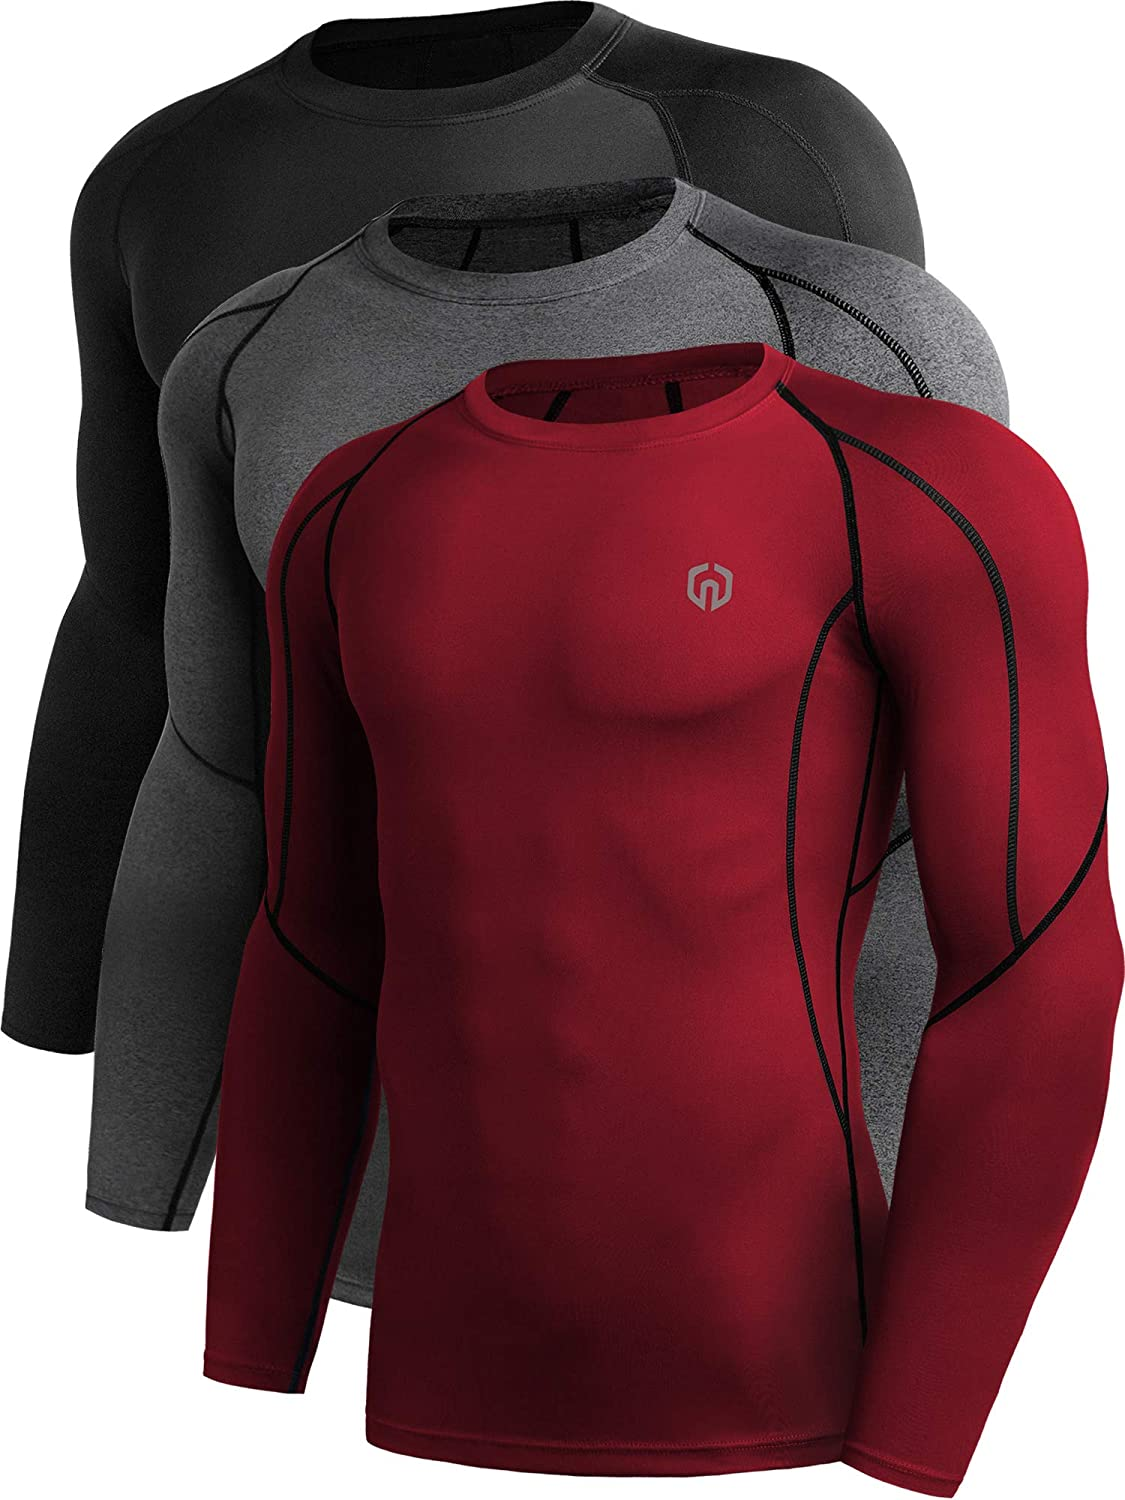 Neleus Men's 3 Pack Dry Fit Compression Worko Long Ranking TOP11 Sleeve Shirts SEAL limited product